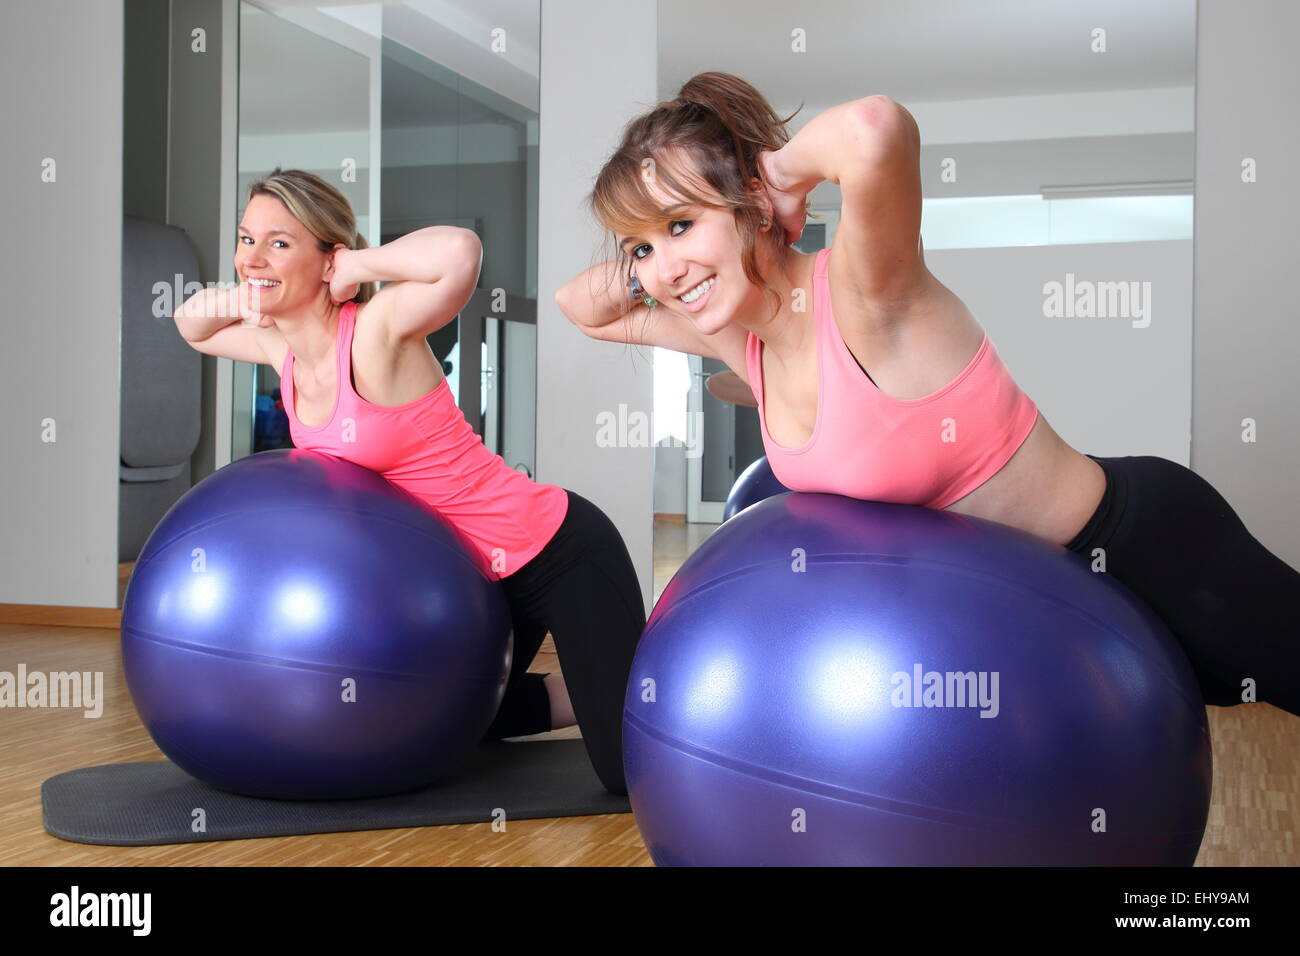 Two women in a fitness center together on a Fitness Ball - Stock Image